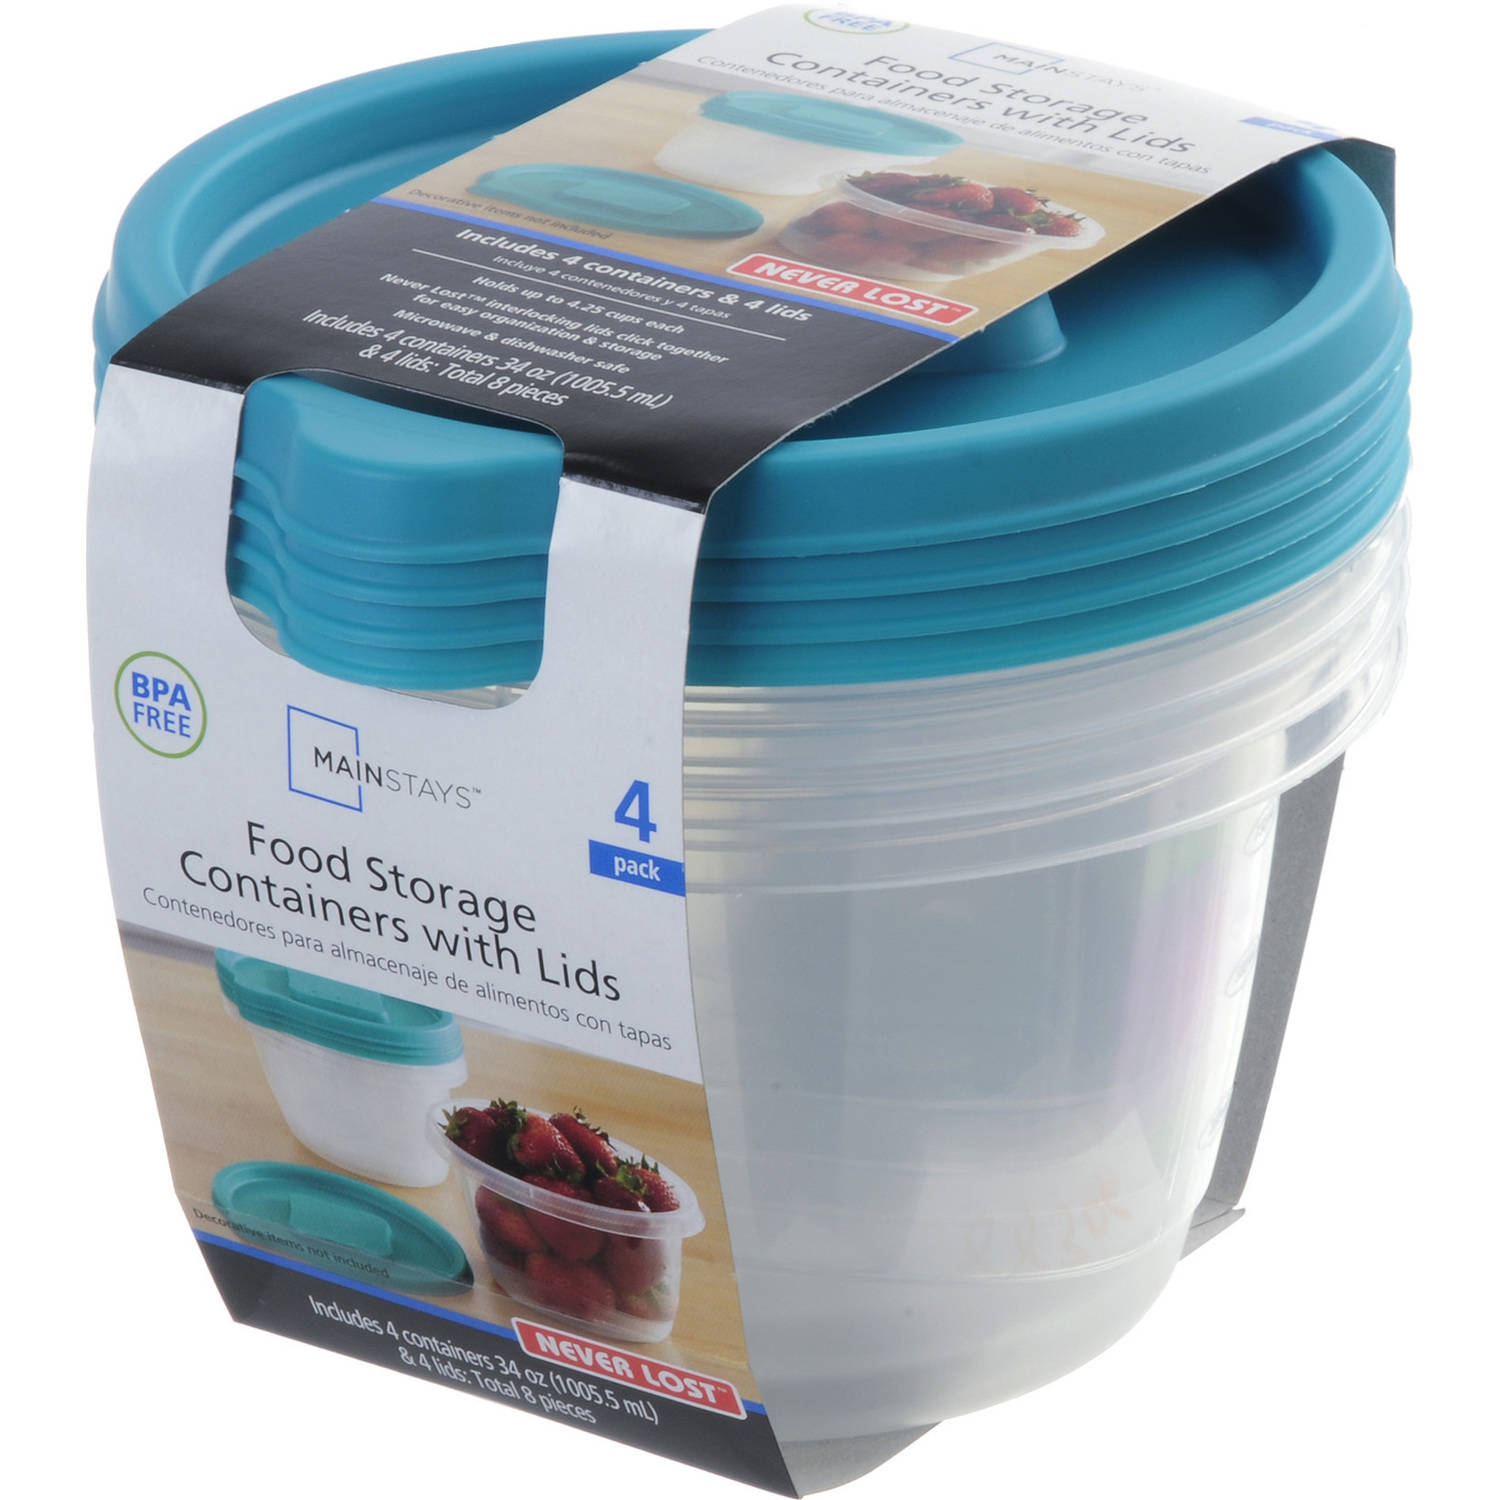 Mainstays Food Storage Containers with Lids, 4 count